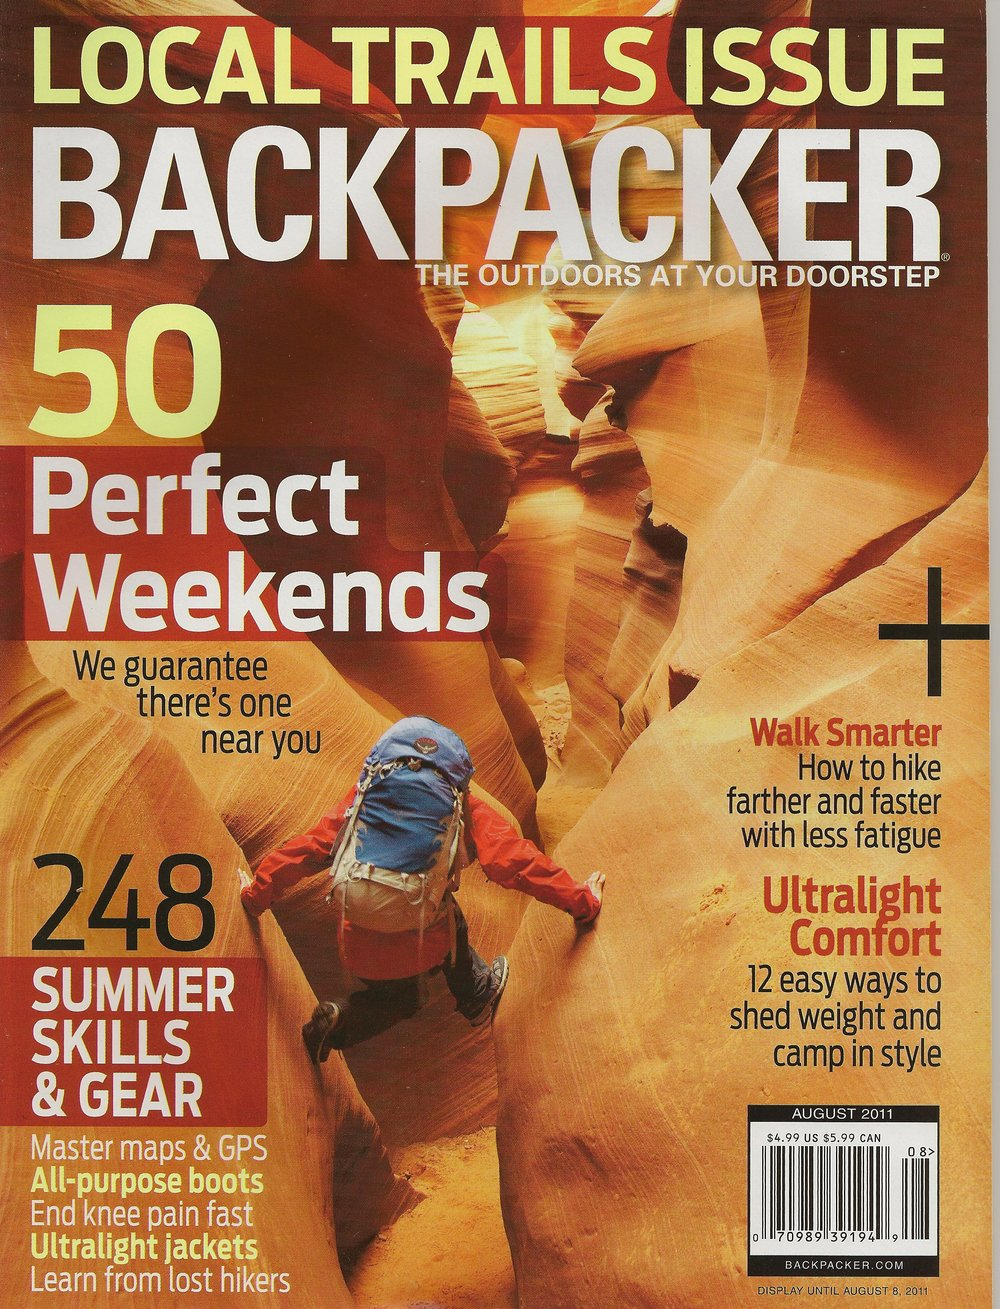 Backpacker Magazine.JPG